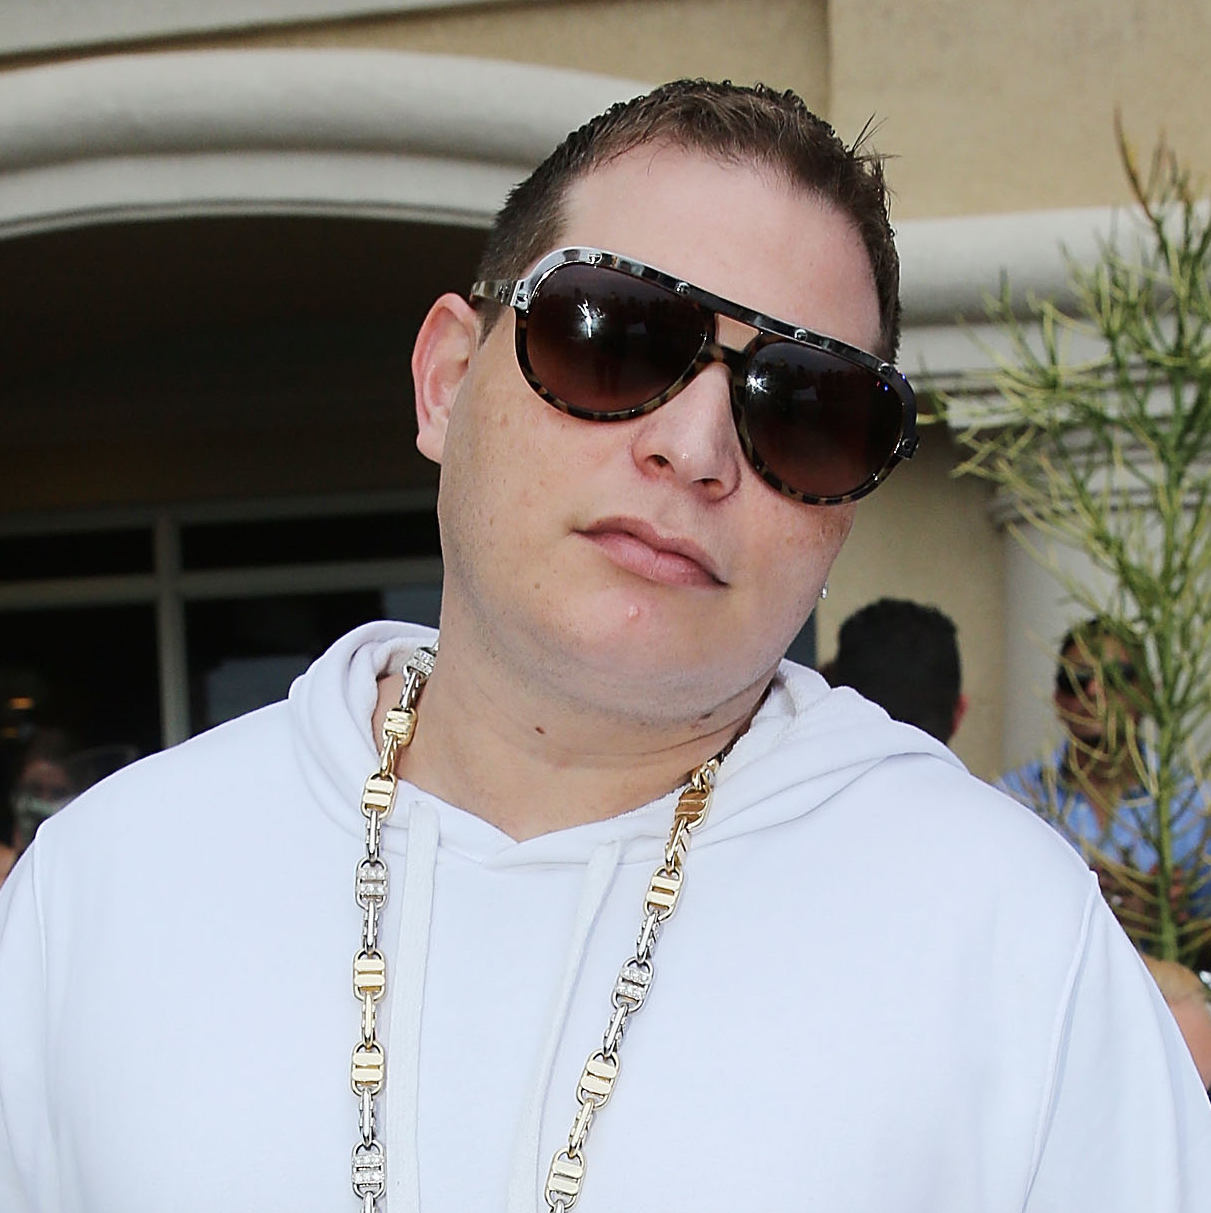 Scott Storch Sued And, According To Reports, Back On The Drugs